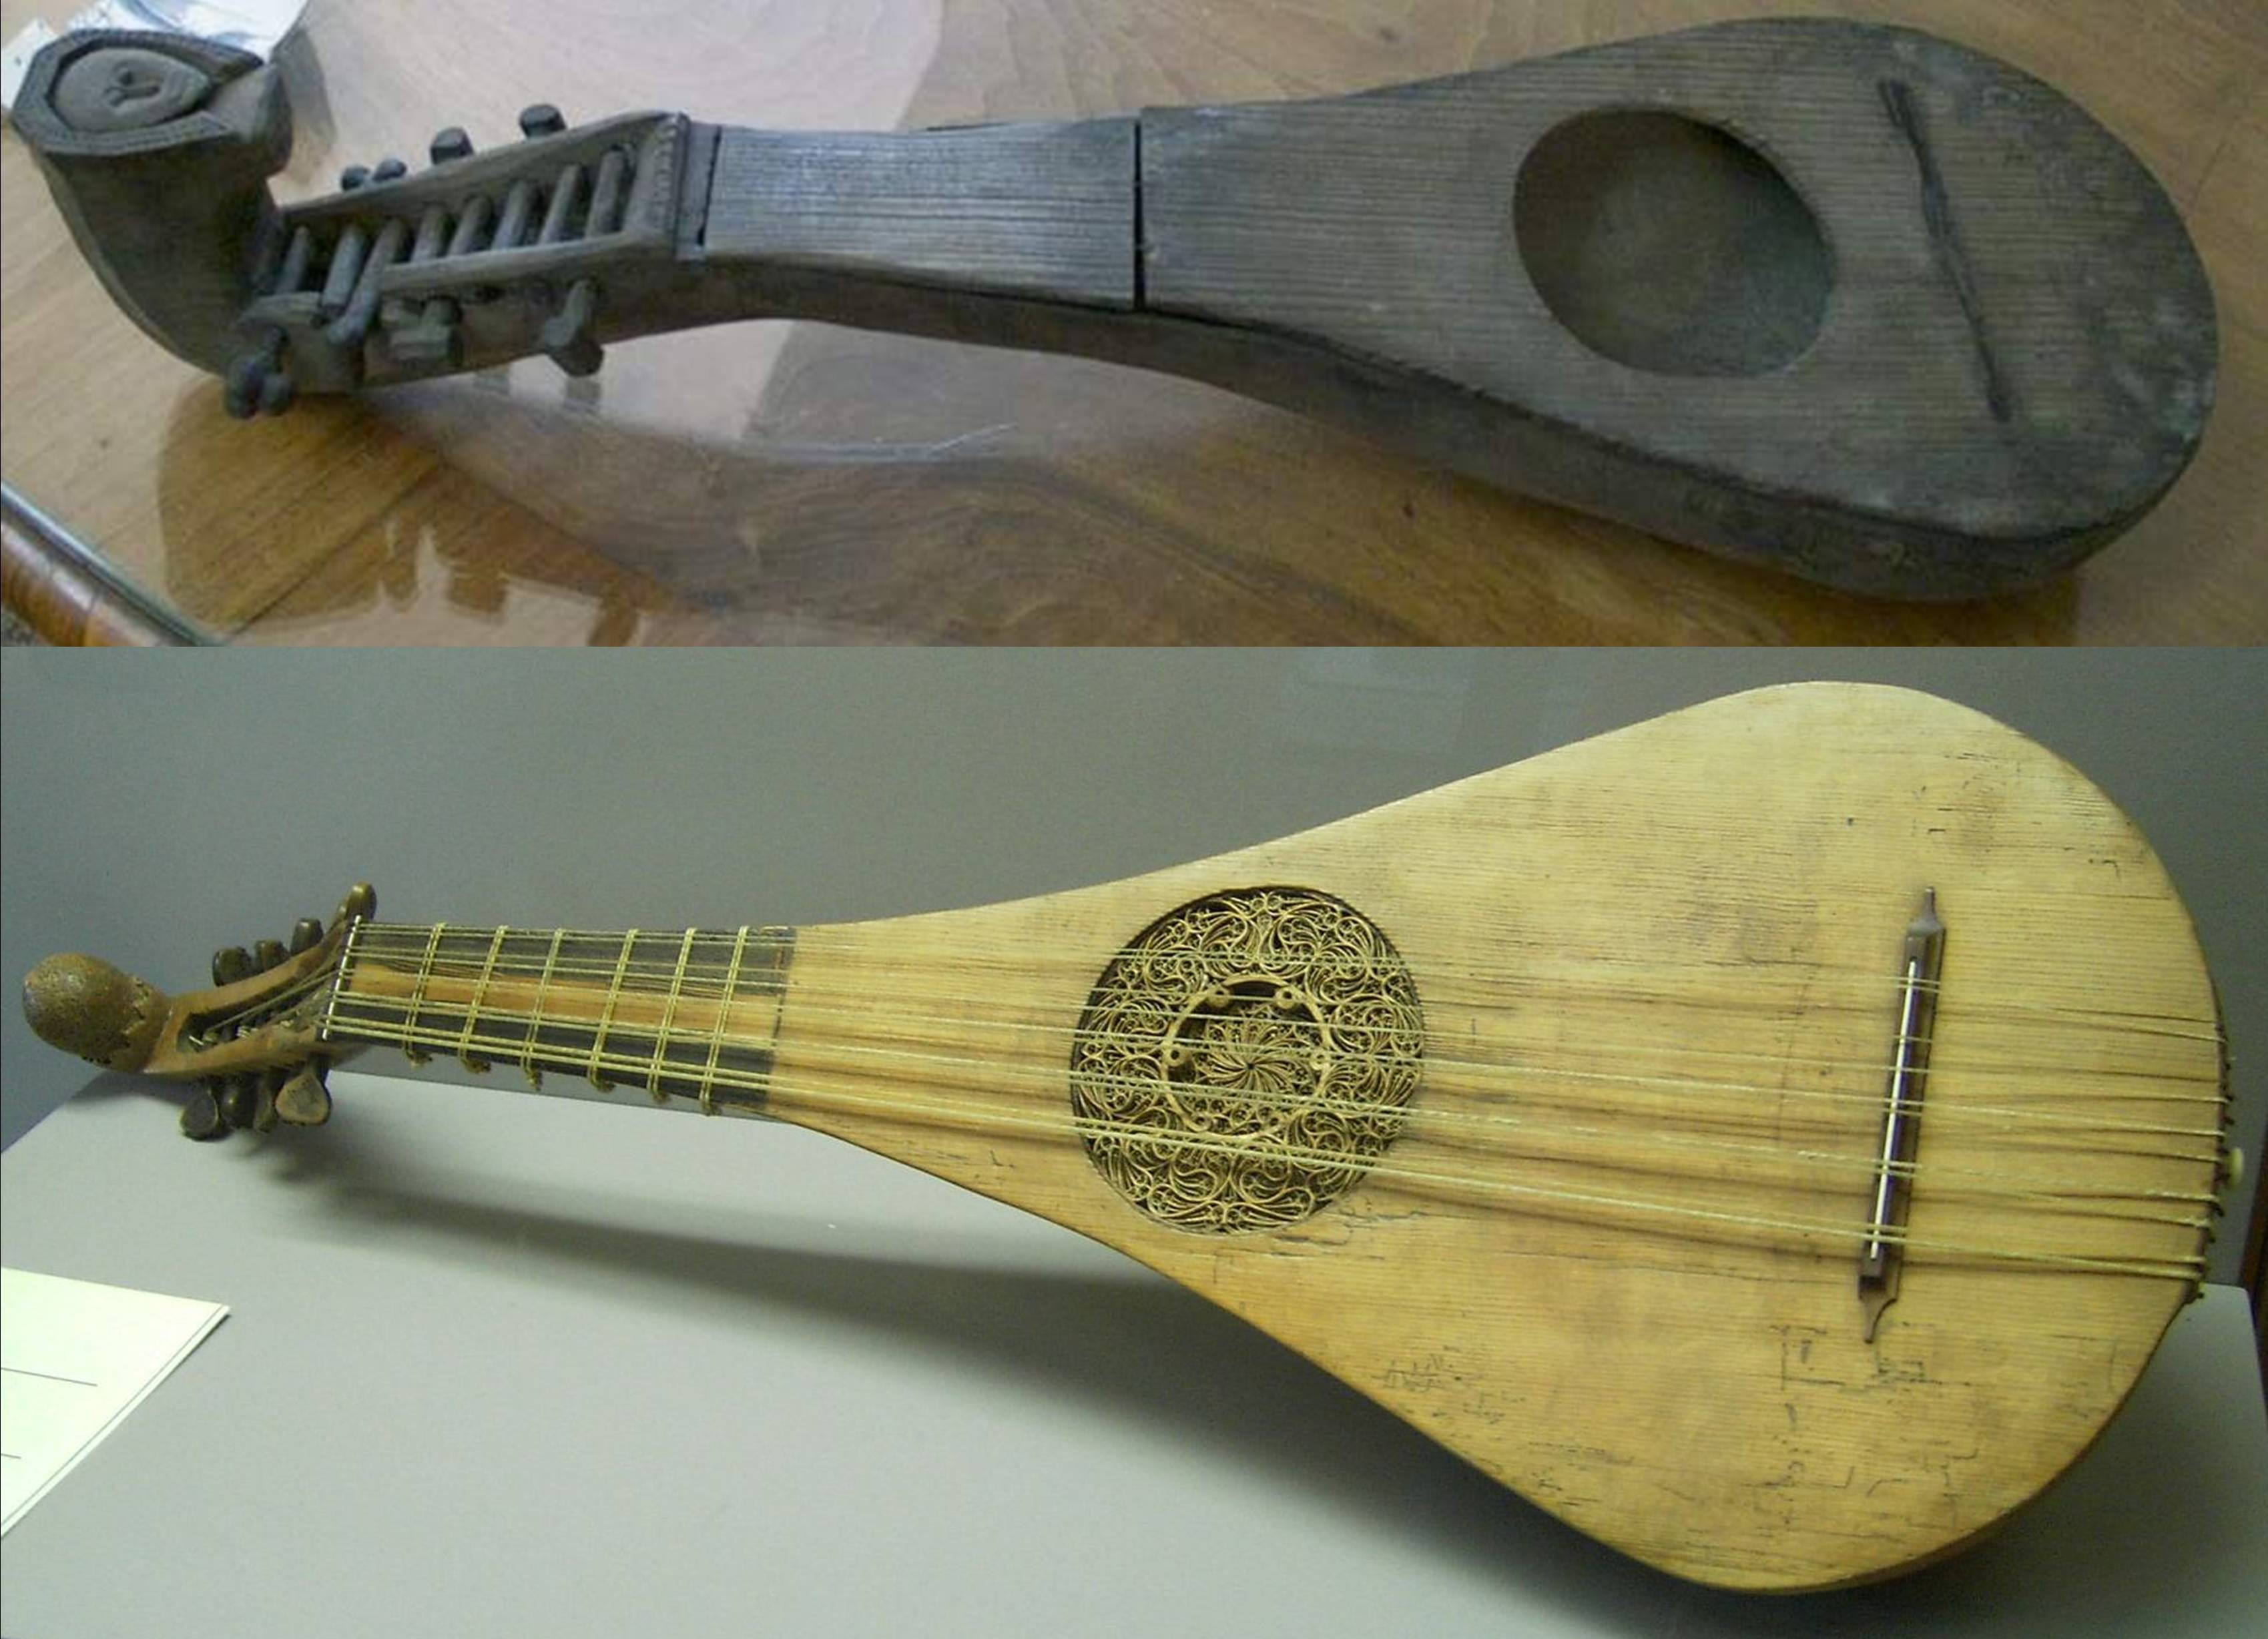 Above, the 4 course gittern excavated from a latrine in the city of Elblag / Elbing, southeast of Danzig, Poland, and dated to c. 1350. Also found were a recorder and fidel. Vibrating string length of around 31cm. Below, 5 course gittern by Hans Ott, who made instruments in Nuremburg from 1432 to 1463. This instrument is dated to c. 1450, and is now in Wartburg, Eisenach, Germany. Vibrating string length of 44cm.